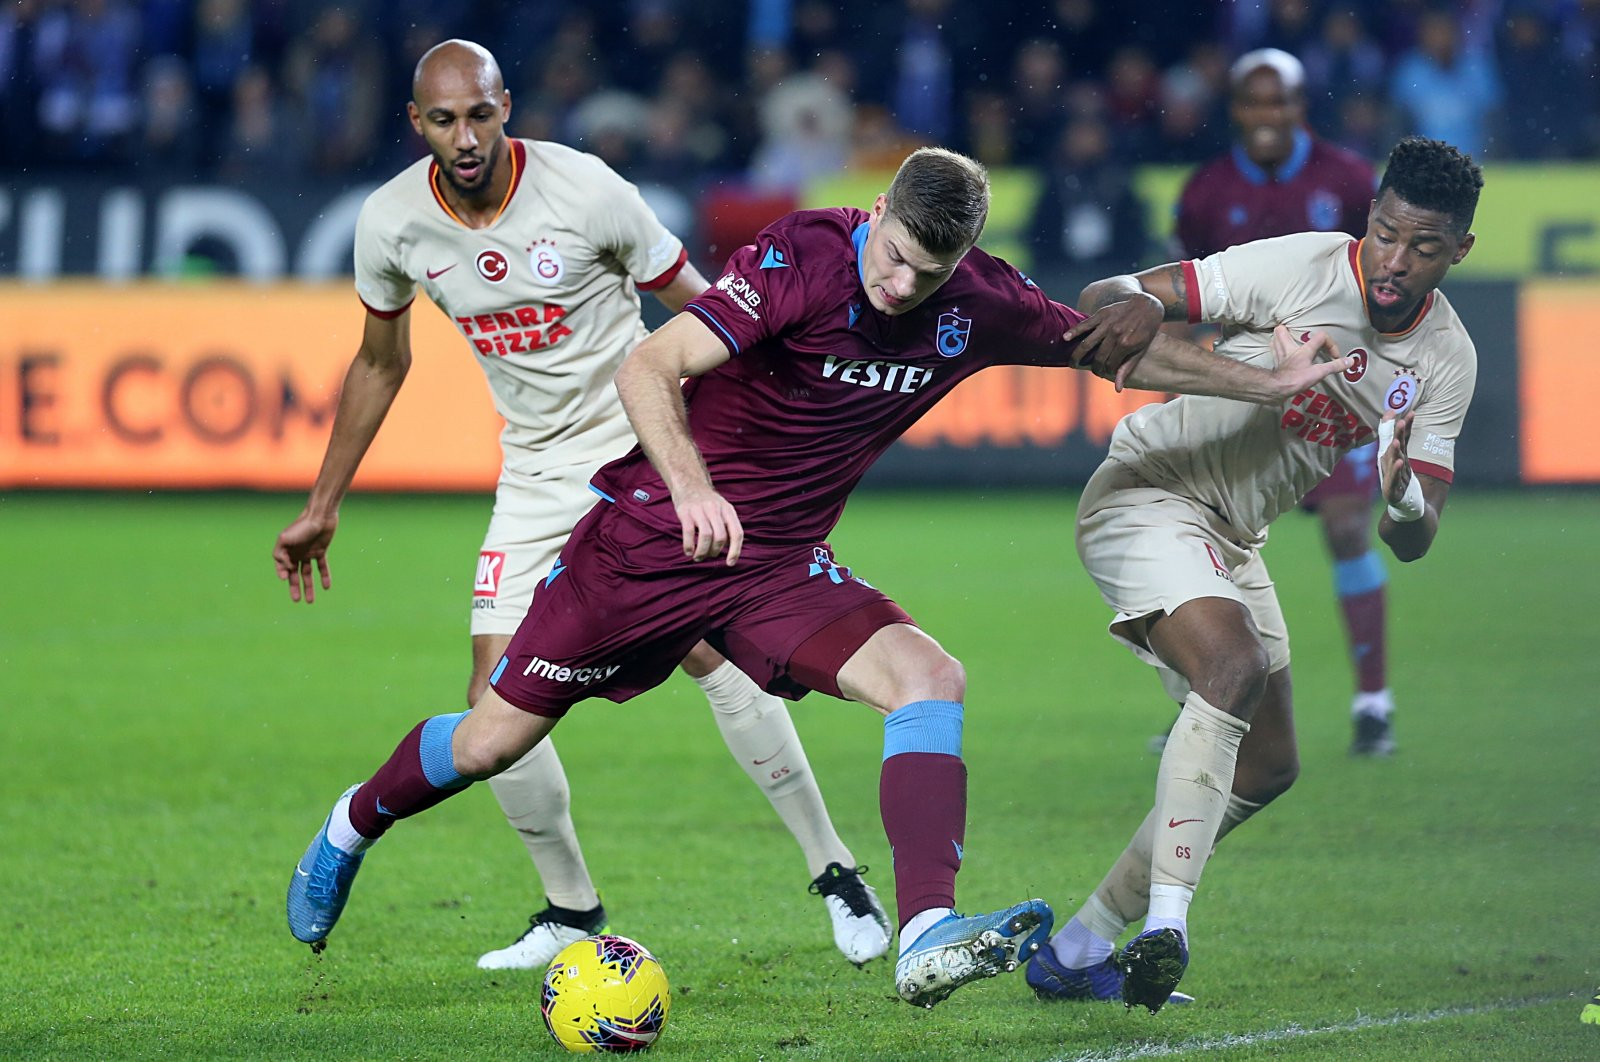 Trabzonspor's Alexander Sorloth (C) tries to dribble past Galatasaray's Ryan Donk (R) and Marcao (L) during a Süper Lig match in Trabzson, Turkey, Dec. 1, 2019. (AA Photo)